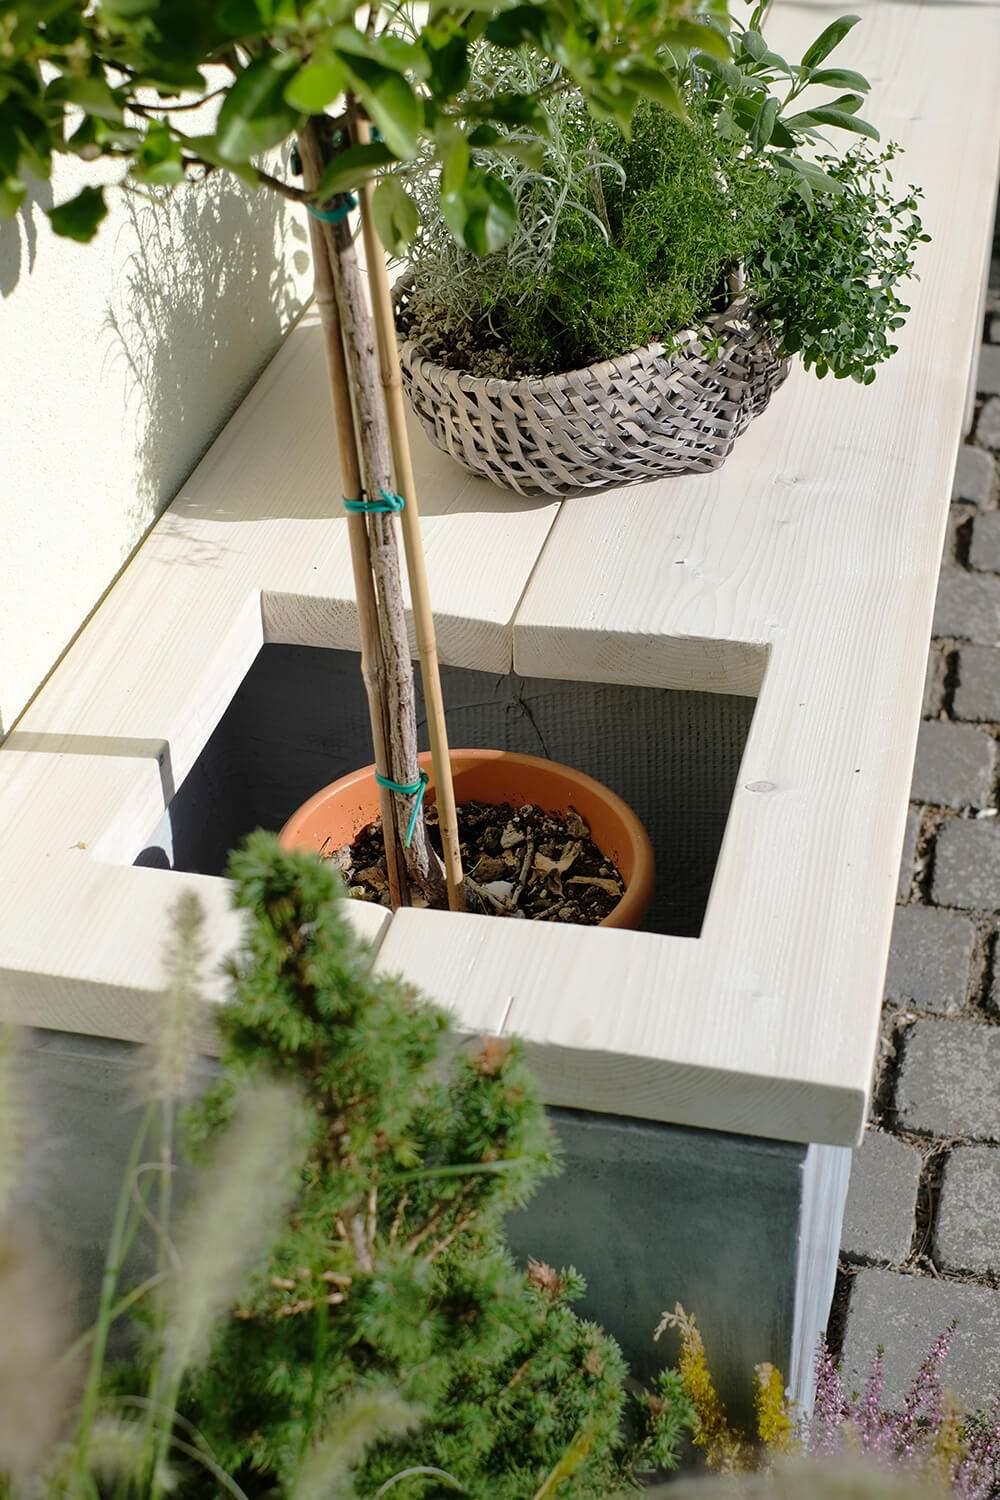 Diy Garten Elegant Diy Bank Garten Manomano Blumenkuebel Loch Gingered Things